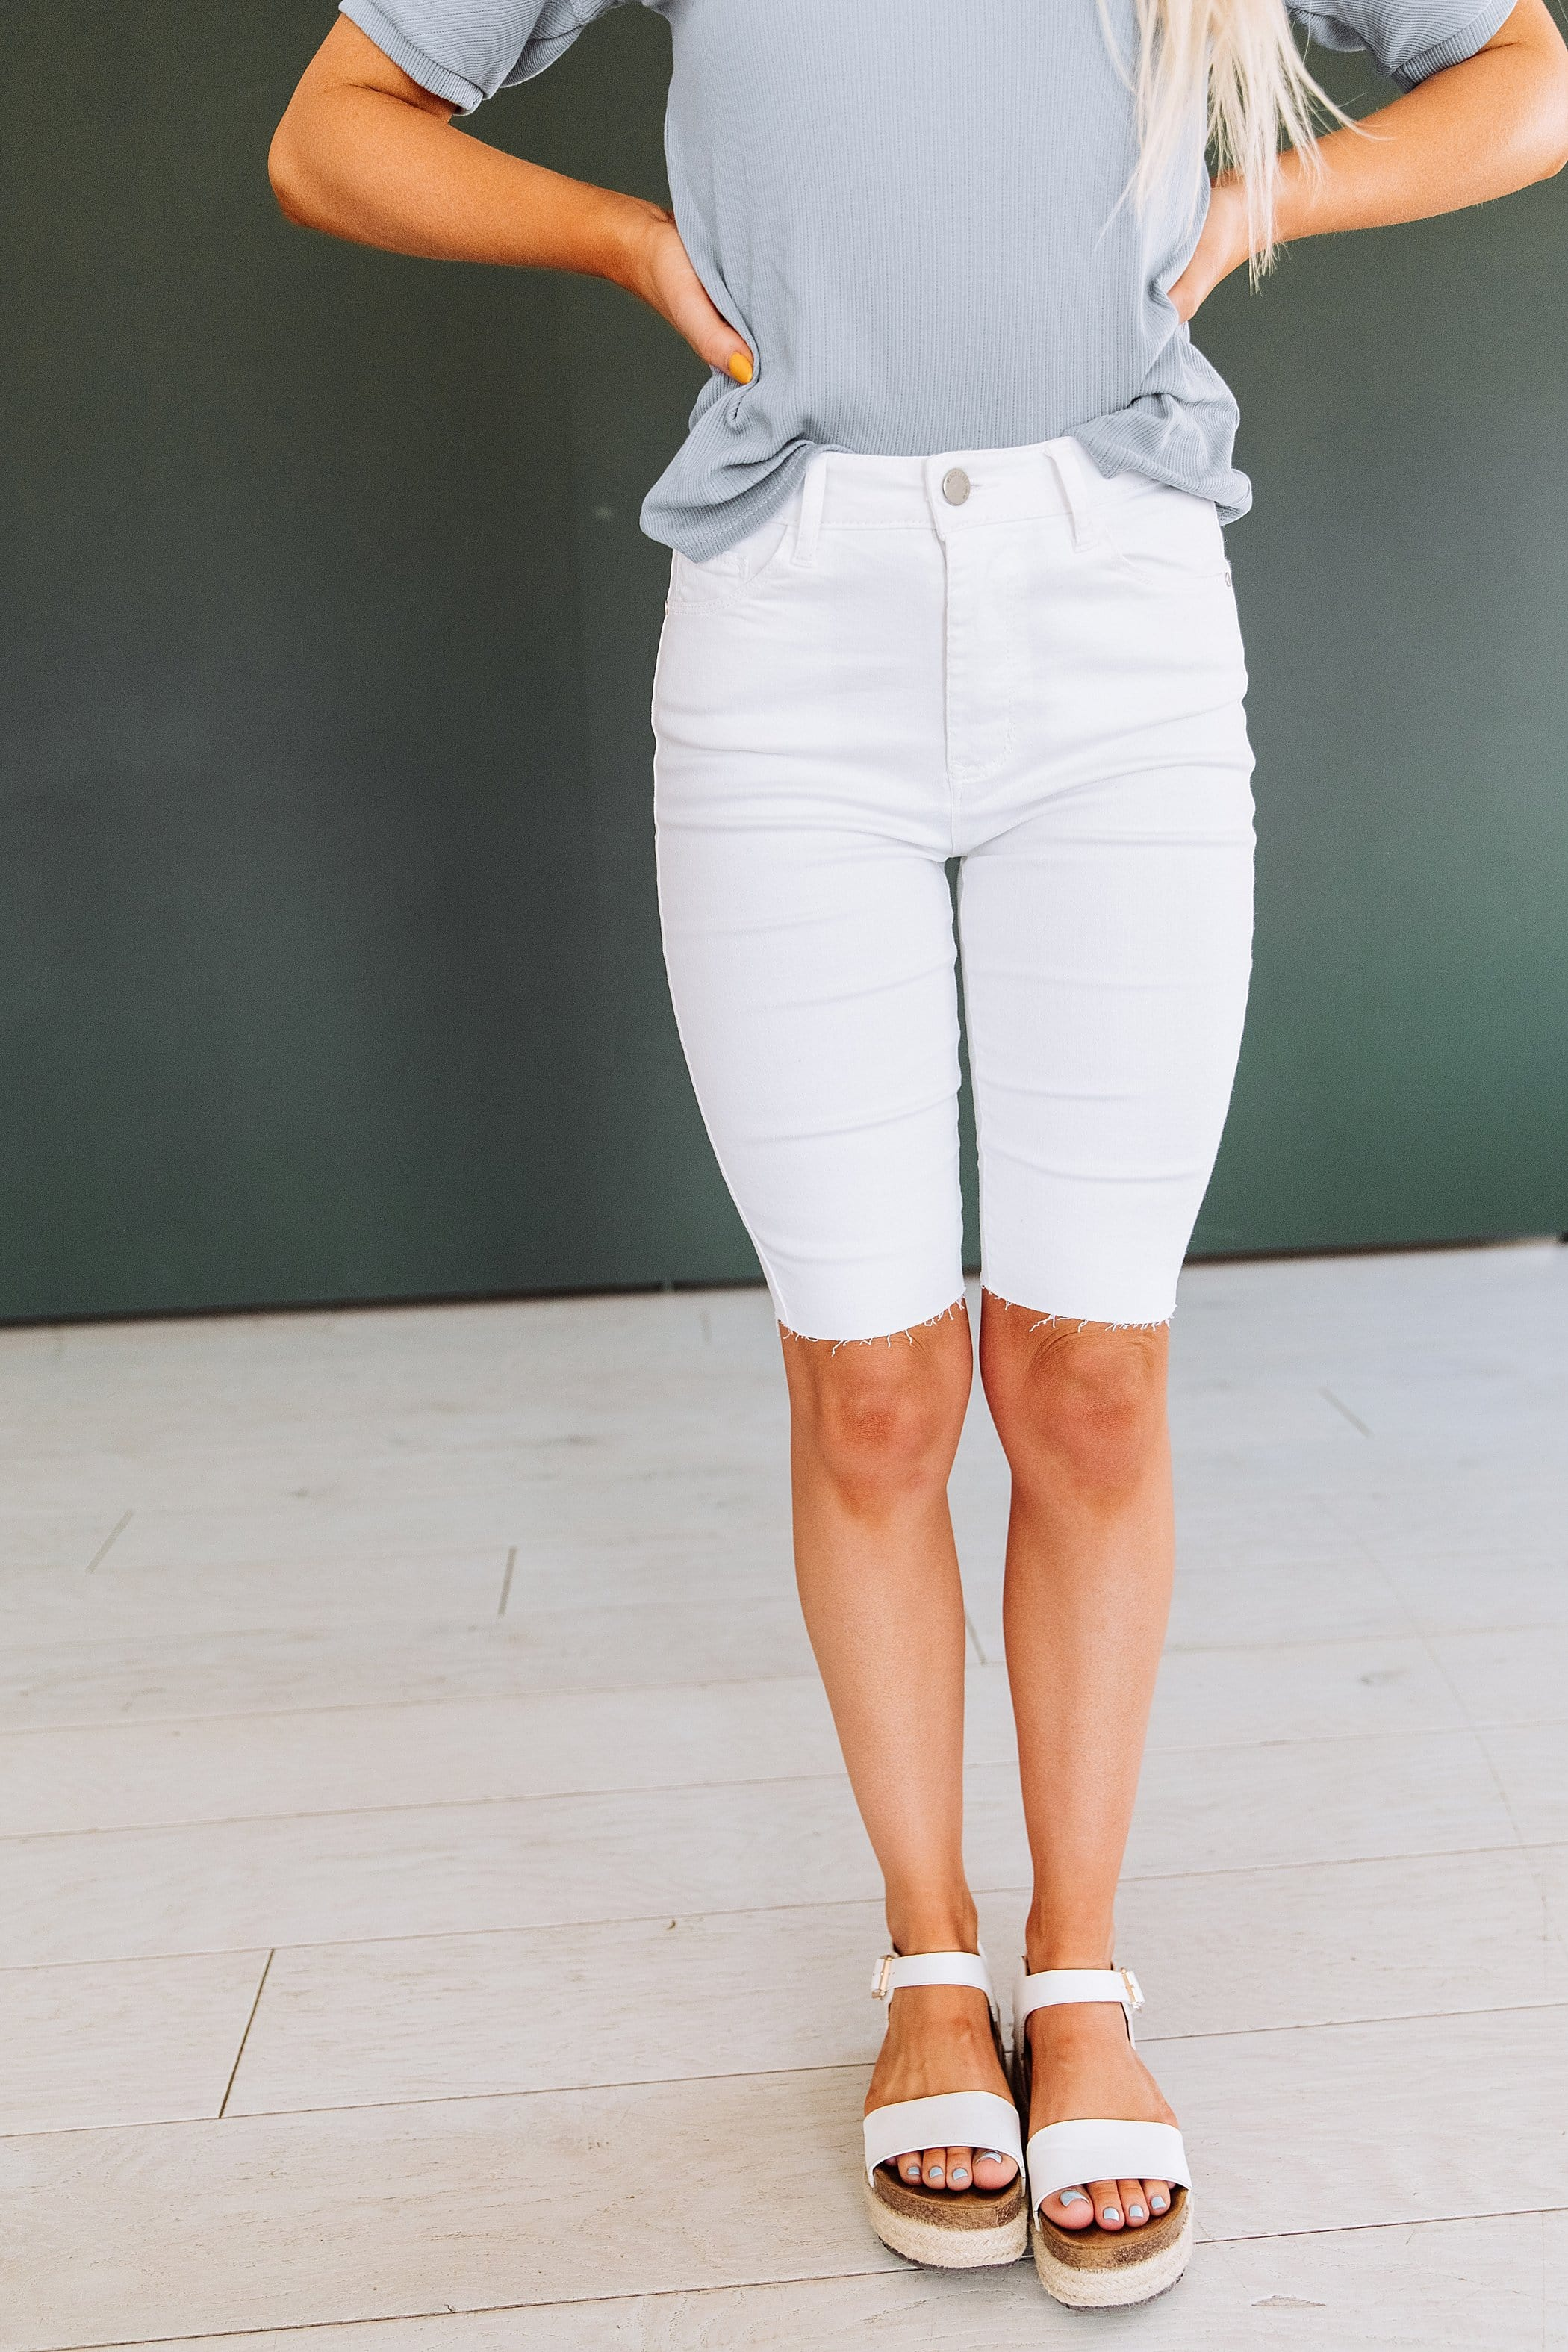 The Indy Bermuda Shorts in Black and White